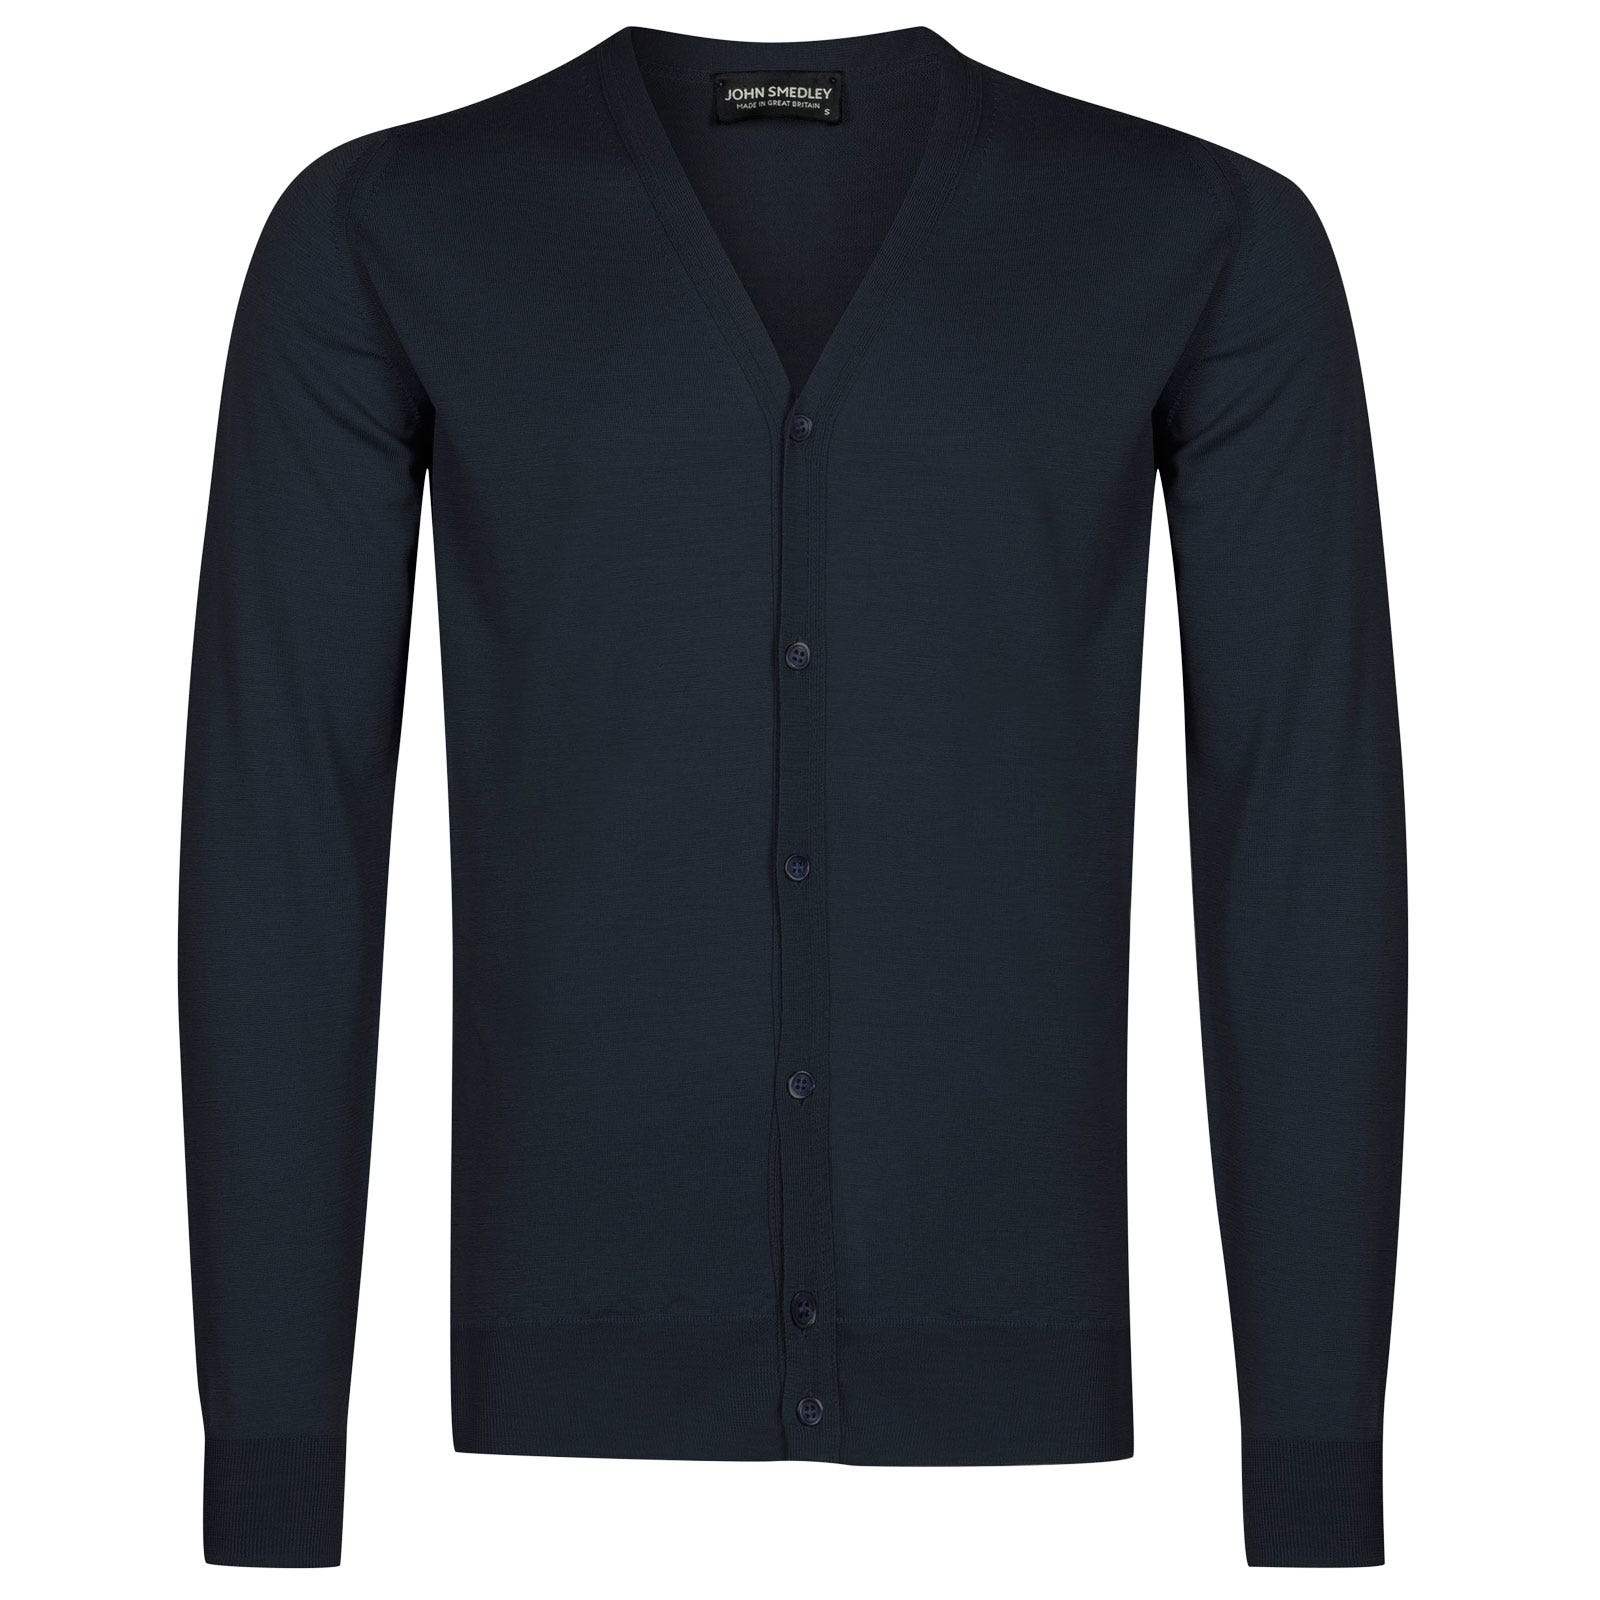 John Smedley petworth Merino Wool Cardigan in Midnight-L